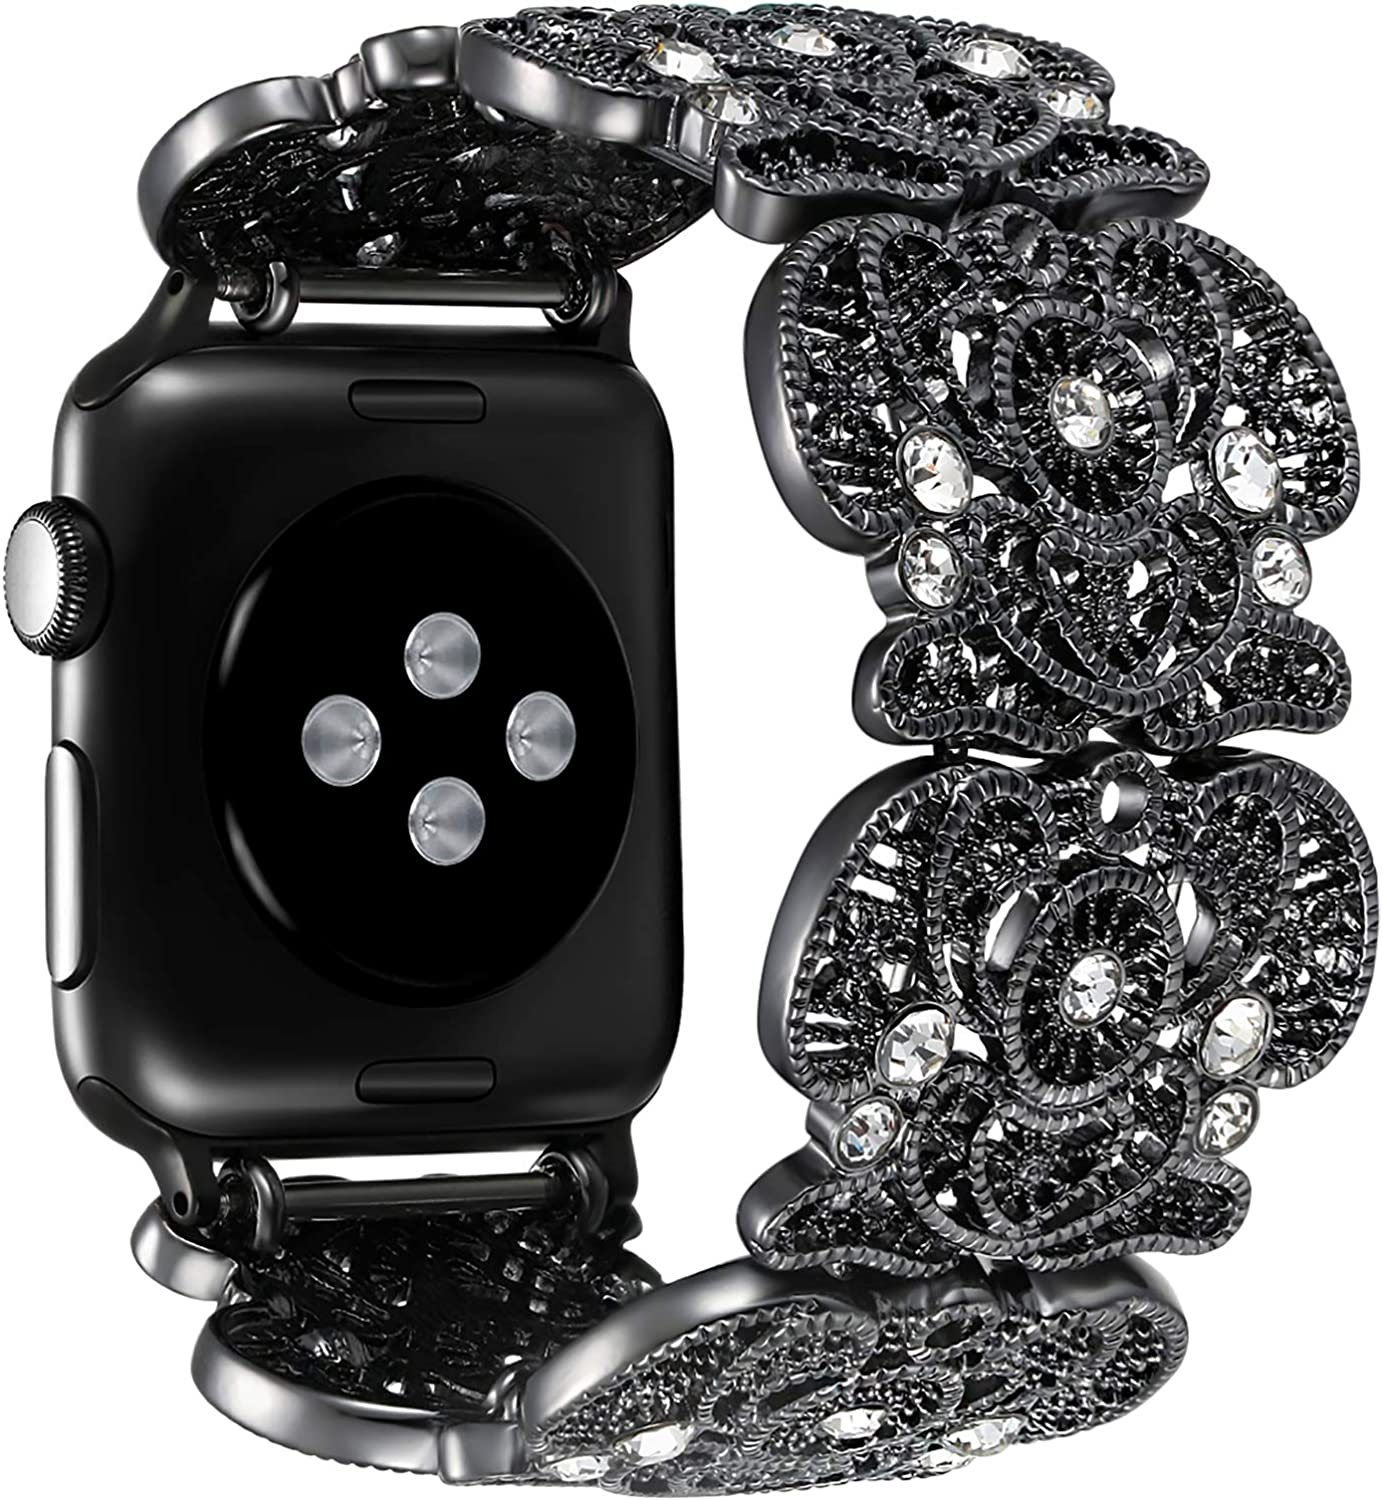 fastgo Compatible with Apple Watch Band Series 6/5/4 38mm/40mm,Women Girl Bohemian Lace Bracelet Vintage Metal Rhinestone Elastic Wristband for Iwatch SE 3/2/1 42mm/44mm Strap Accessories Lady Gifts